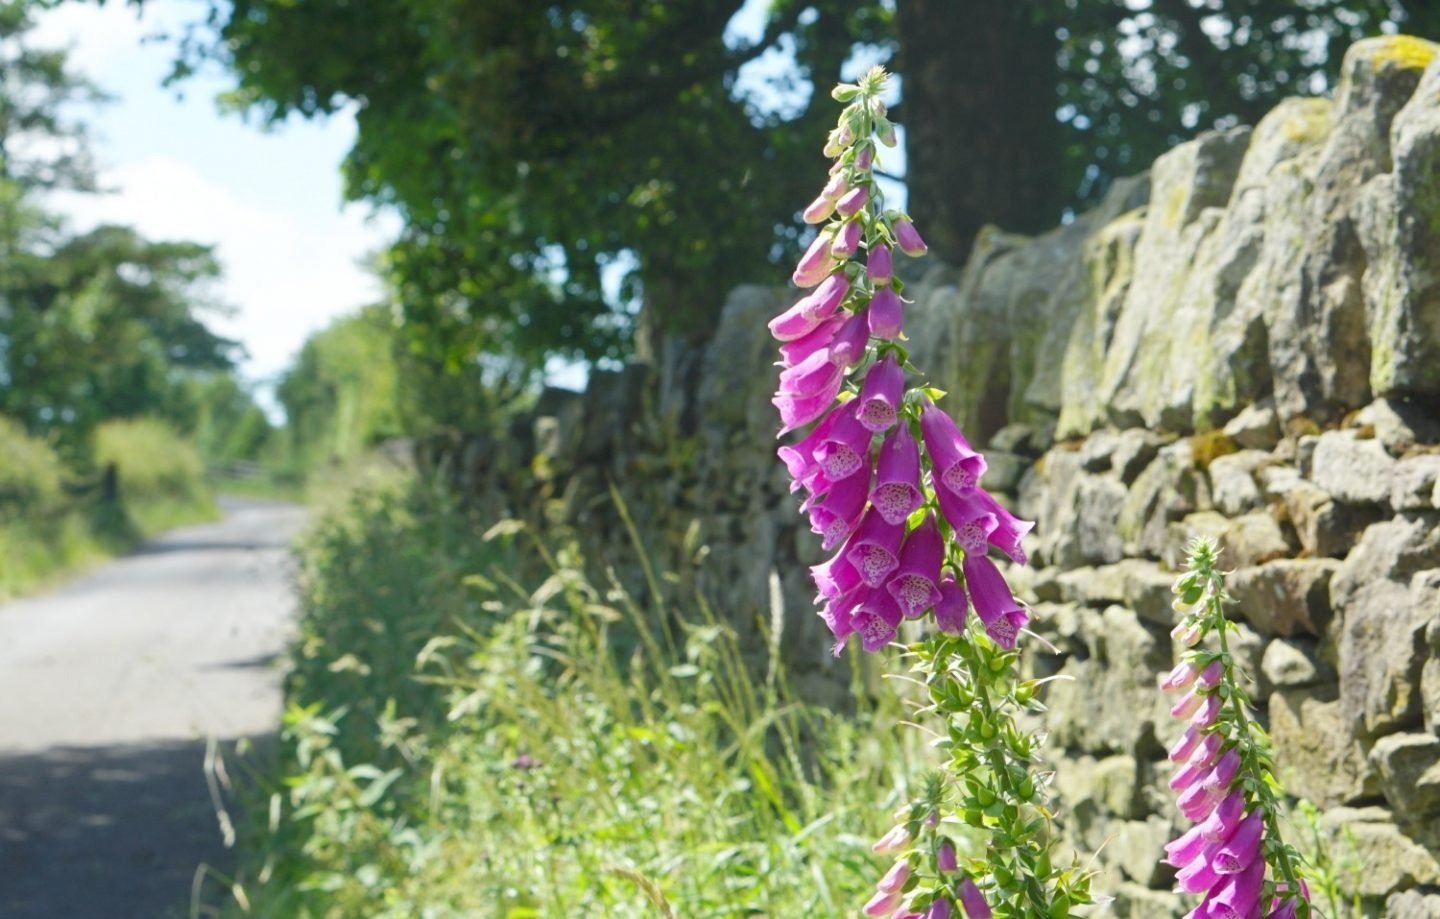 Flowers on a country road in Lancashire, a fun week extraordinarychaos.com